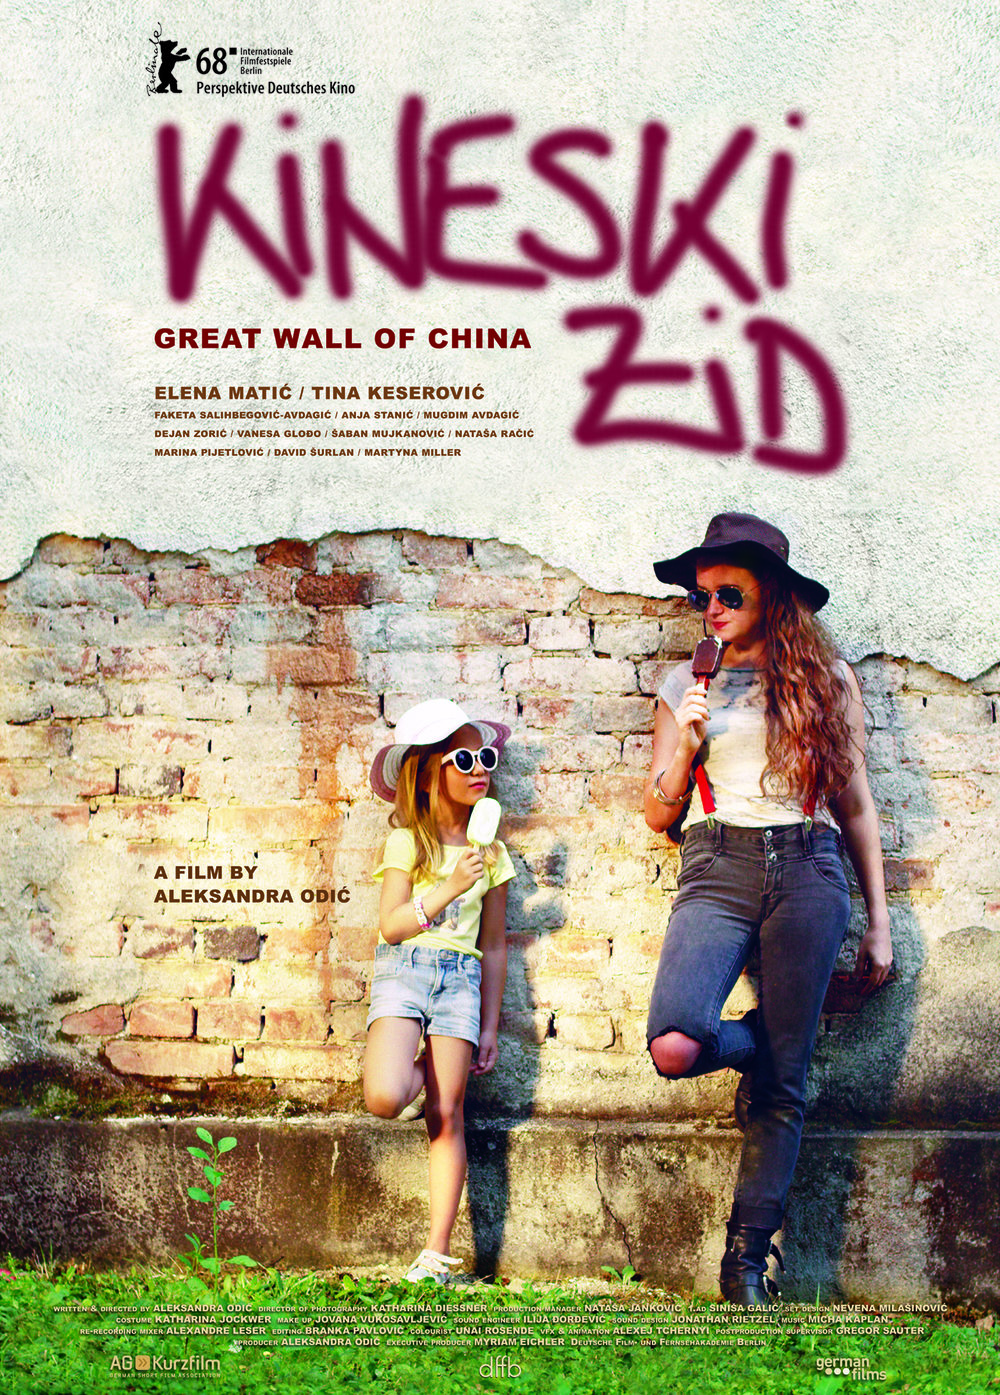 Great Wall of China    Bosnia, present day. On one afternoon, the 8 year old Maja visits her grandparents in the countryside. Her young aunt Ljilja lives there too. Ljilja is a rebellious artist, who doesn't want to accept the suffocating...   Read More